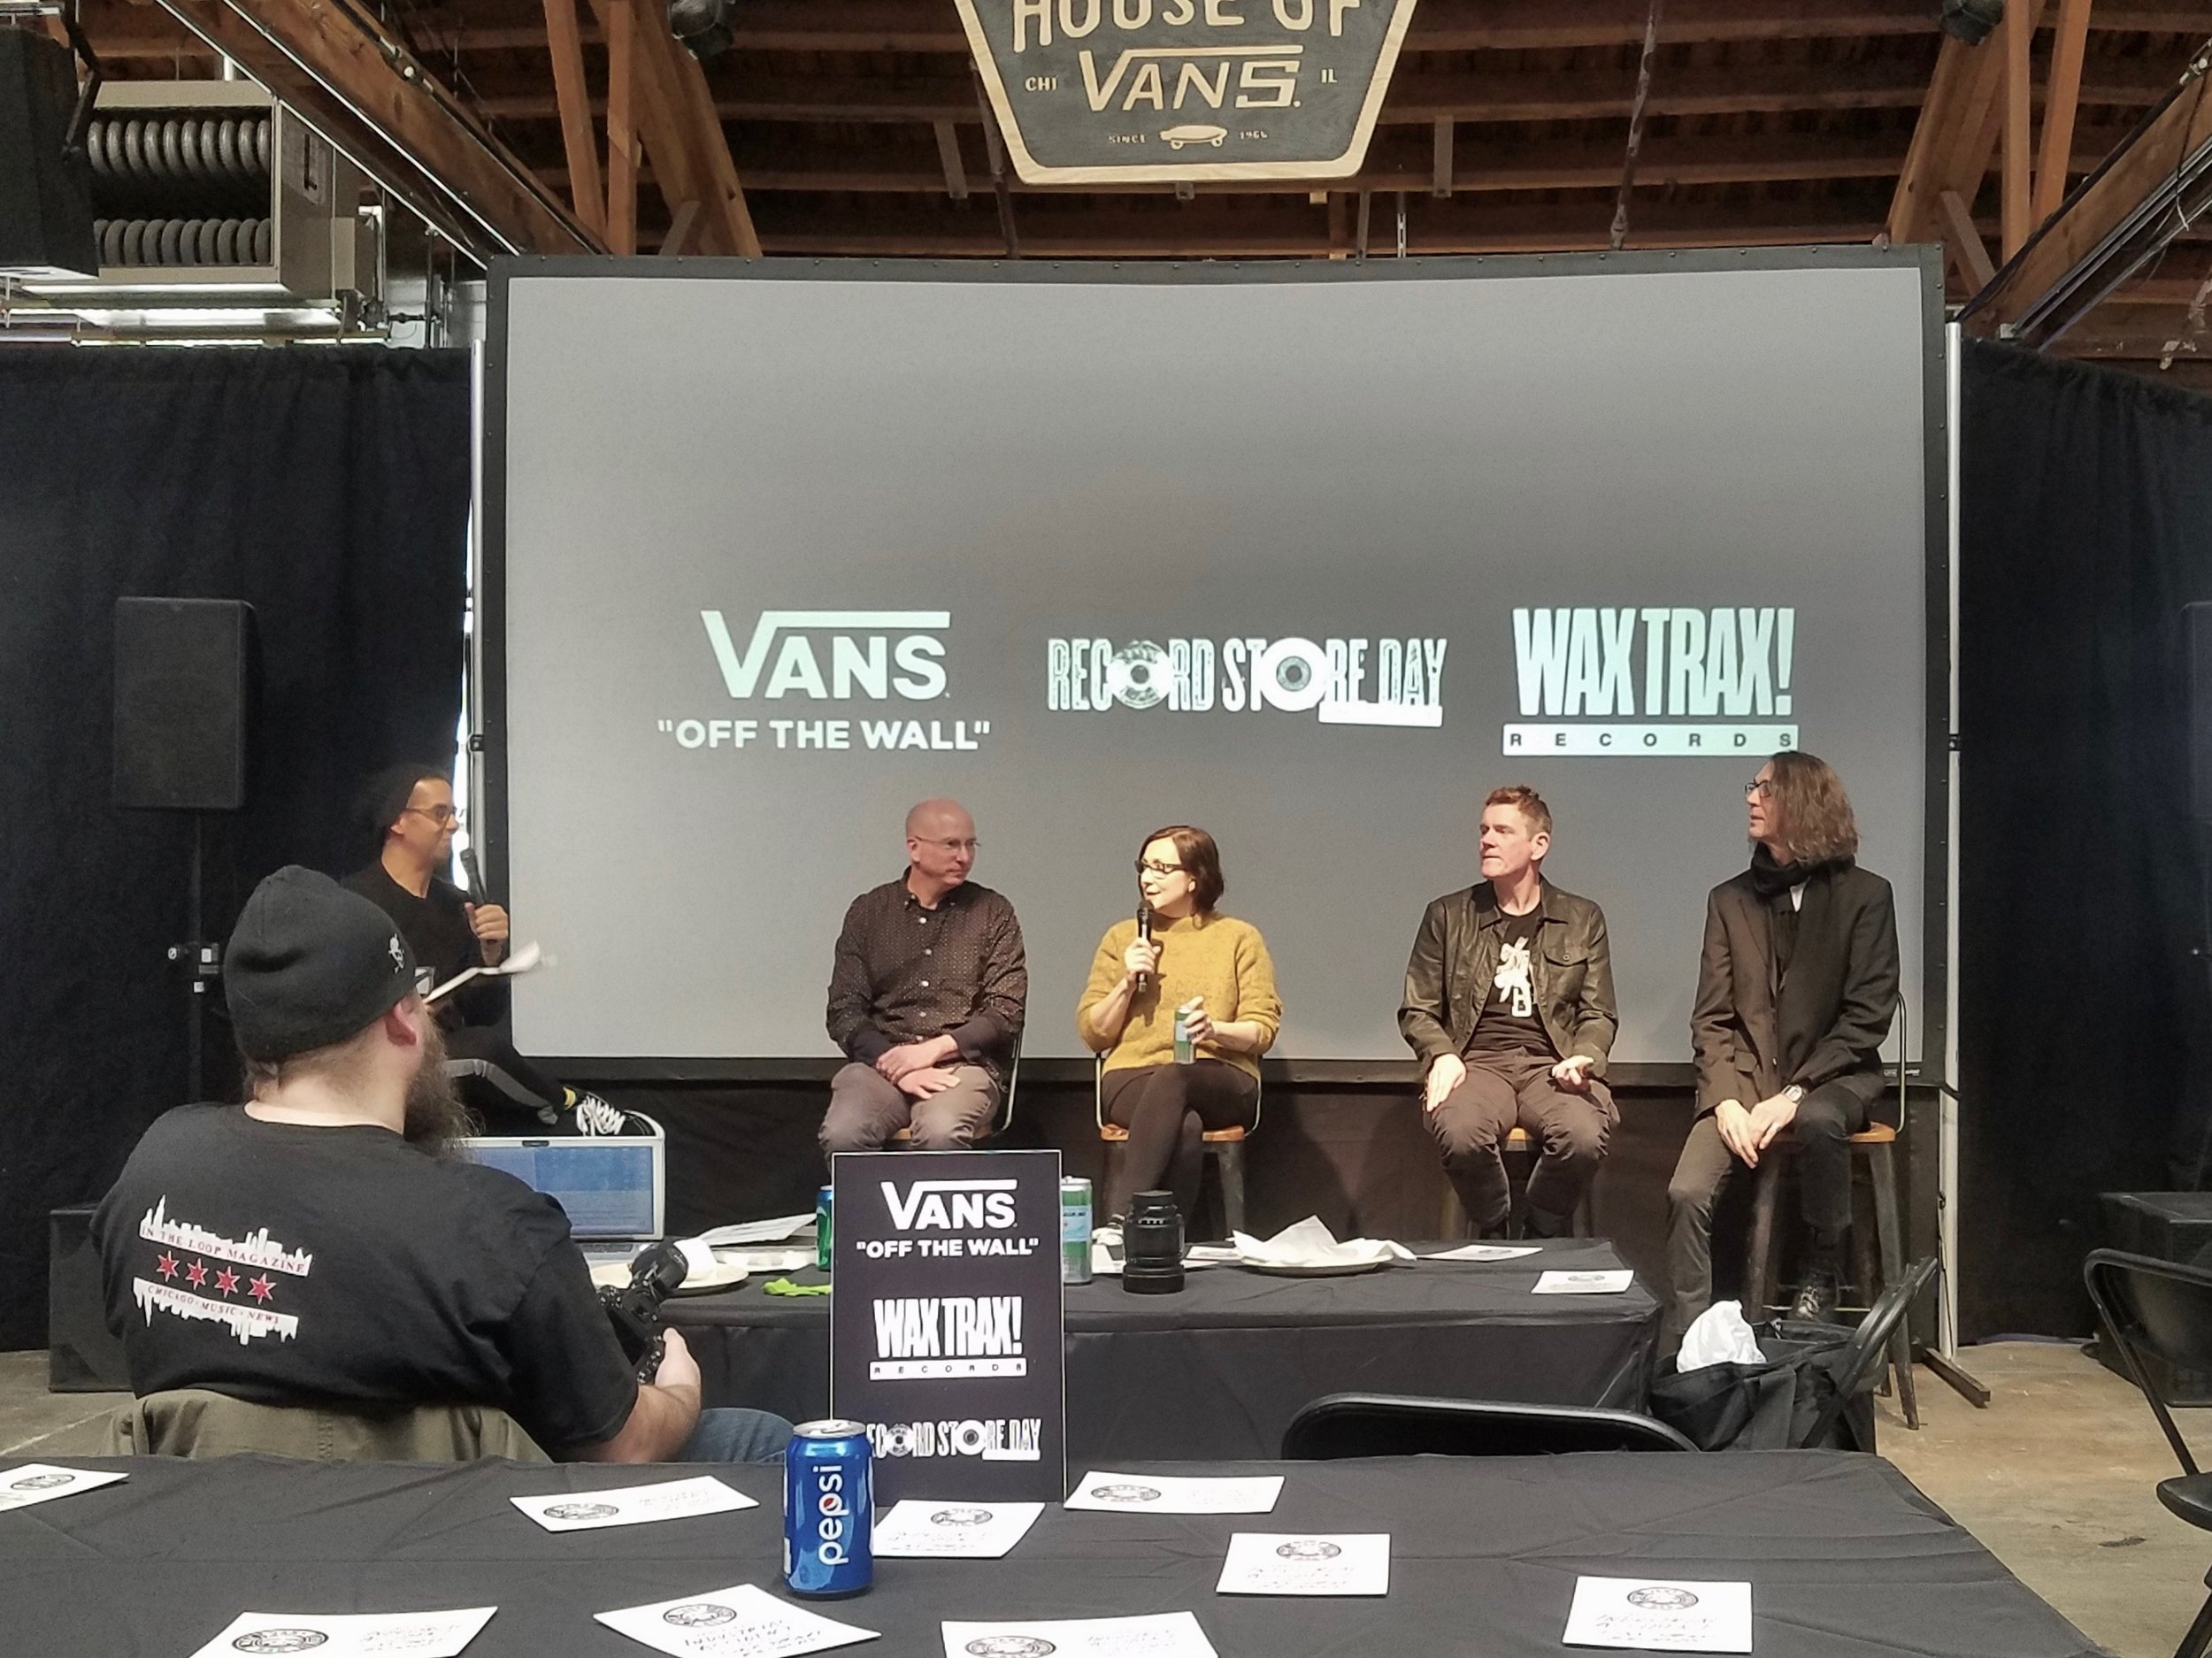 Industrial Accident: The Story of WaxTrax Records! - Documentary Soundtrack ReleaseHouse of Vans - February 28th